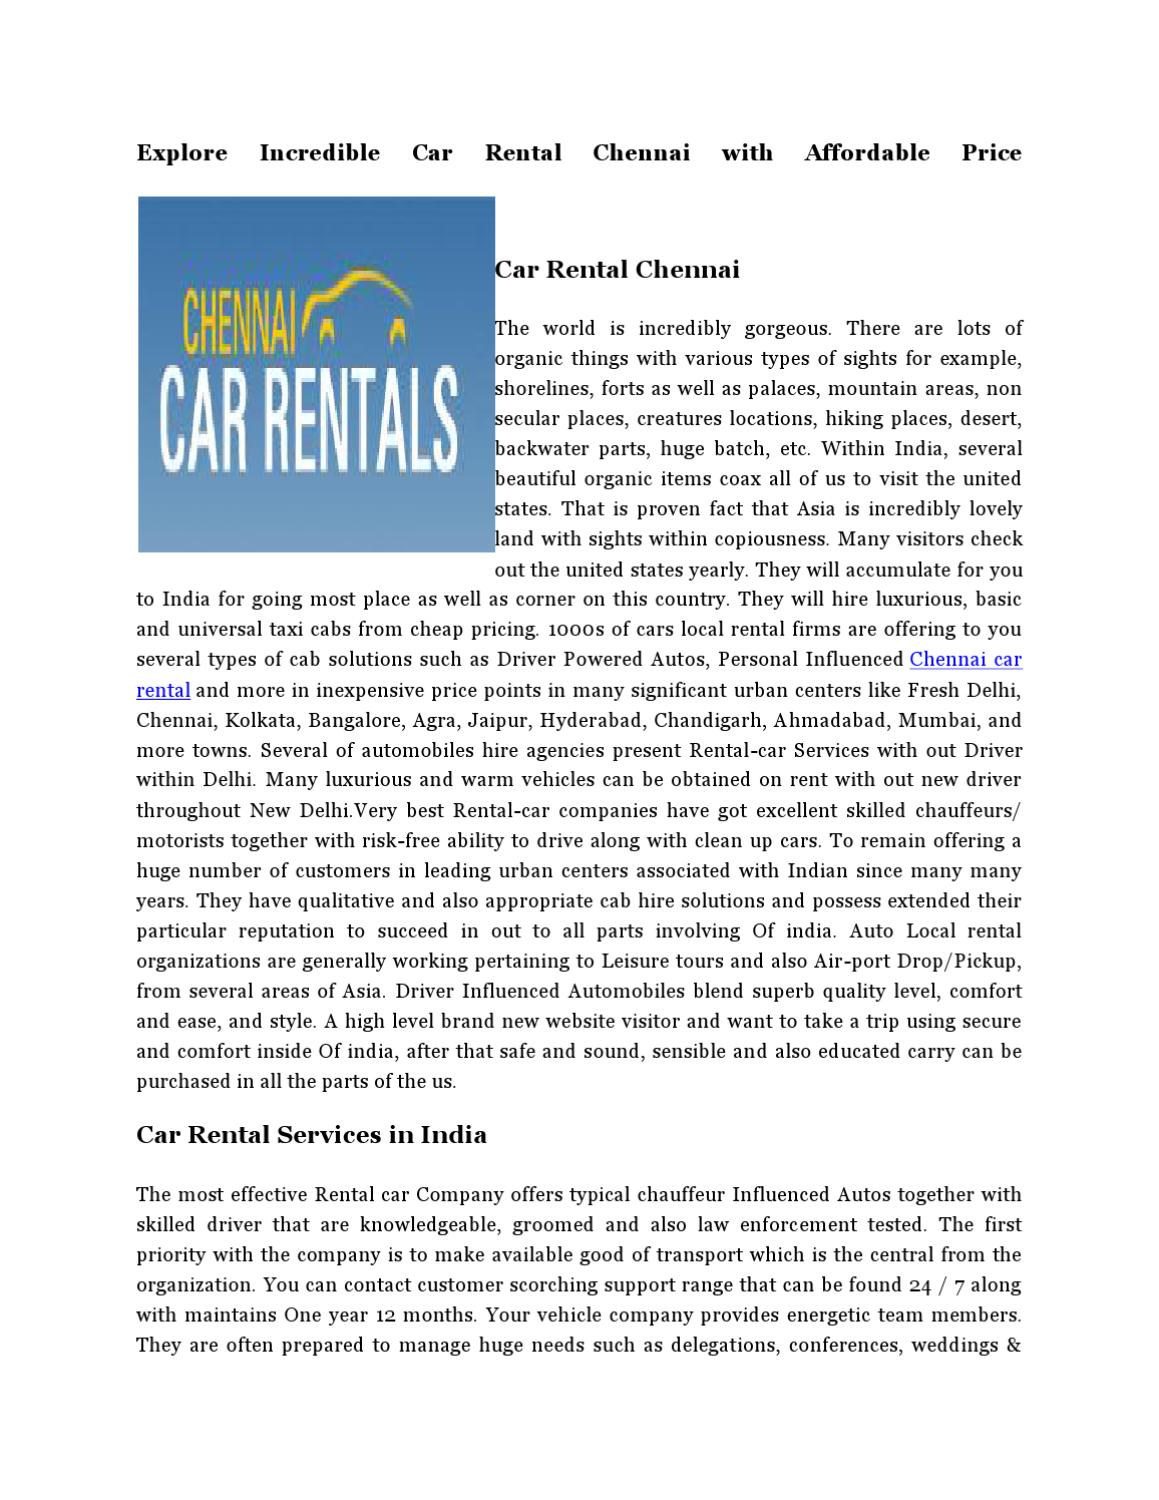 Car Rental Hyderabad With Driver >> Economy and Luxury Cabs on Rental in Chennai by Henry saran - Issuu